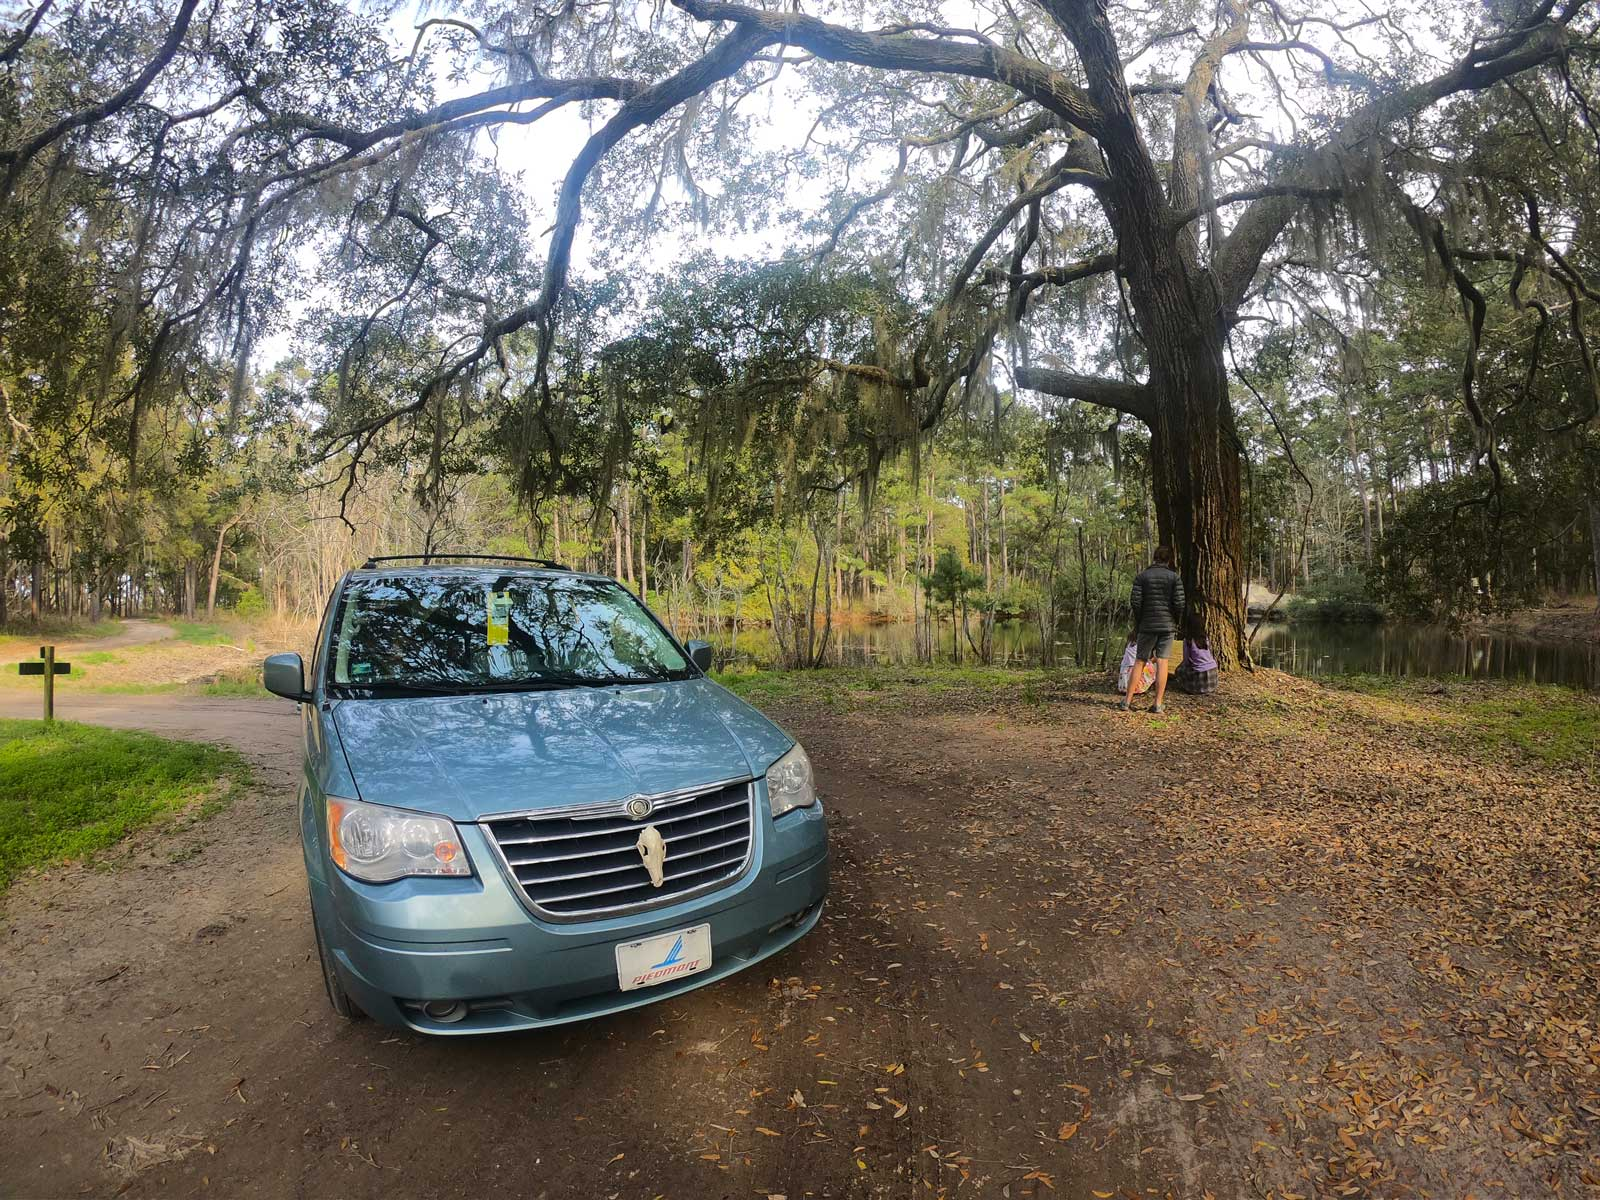 Van parked under a large live oak near Botany Bay pond at the Botany Bay Plantation, Edisto Island, SC